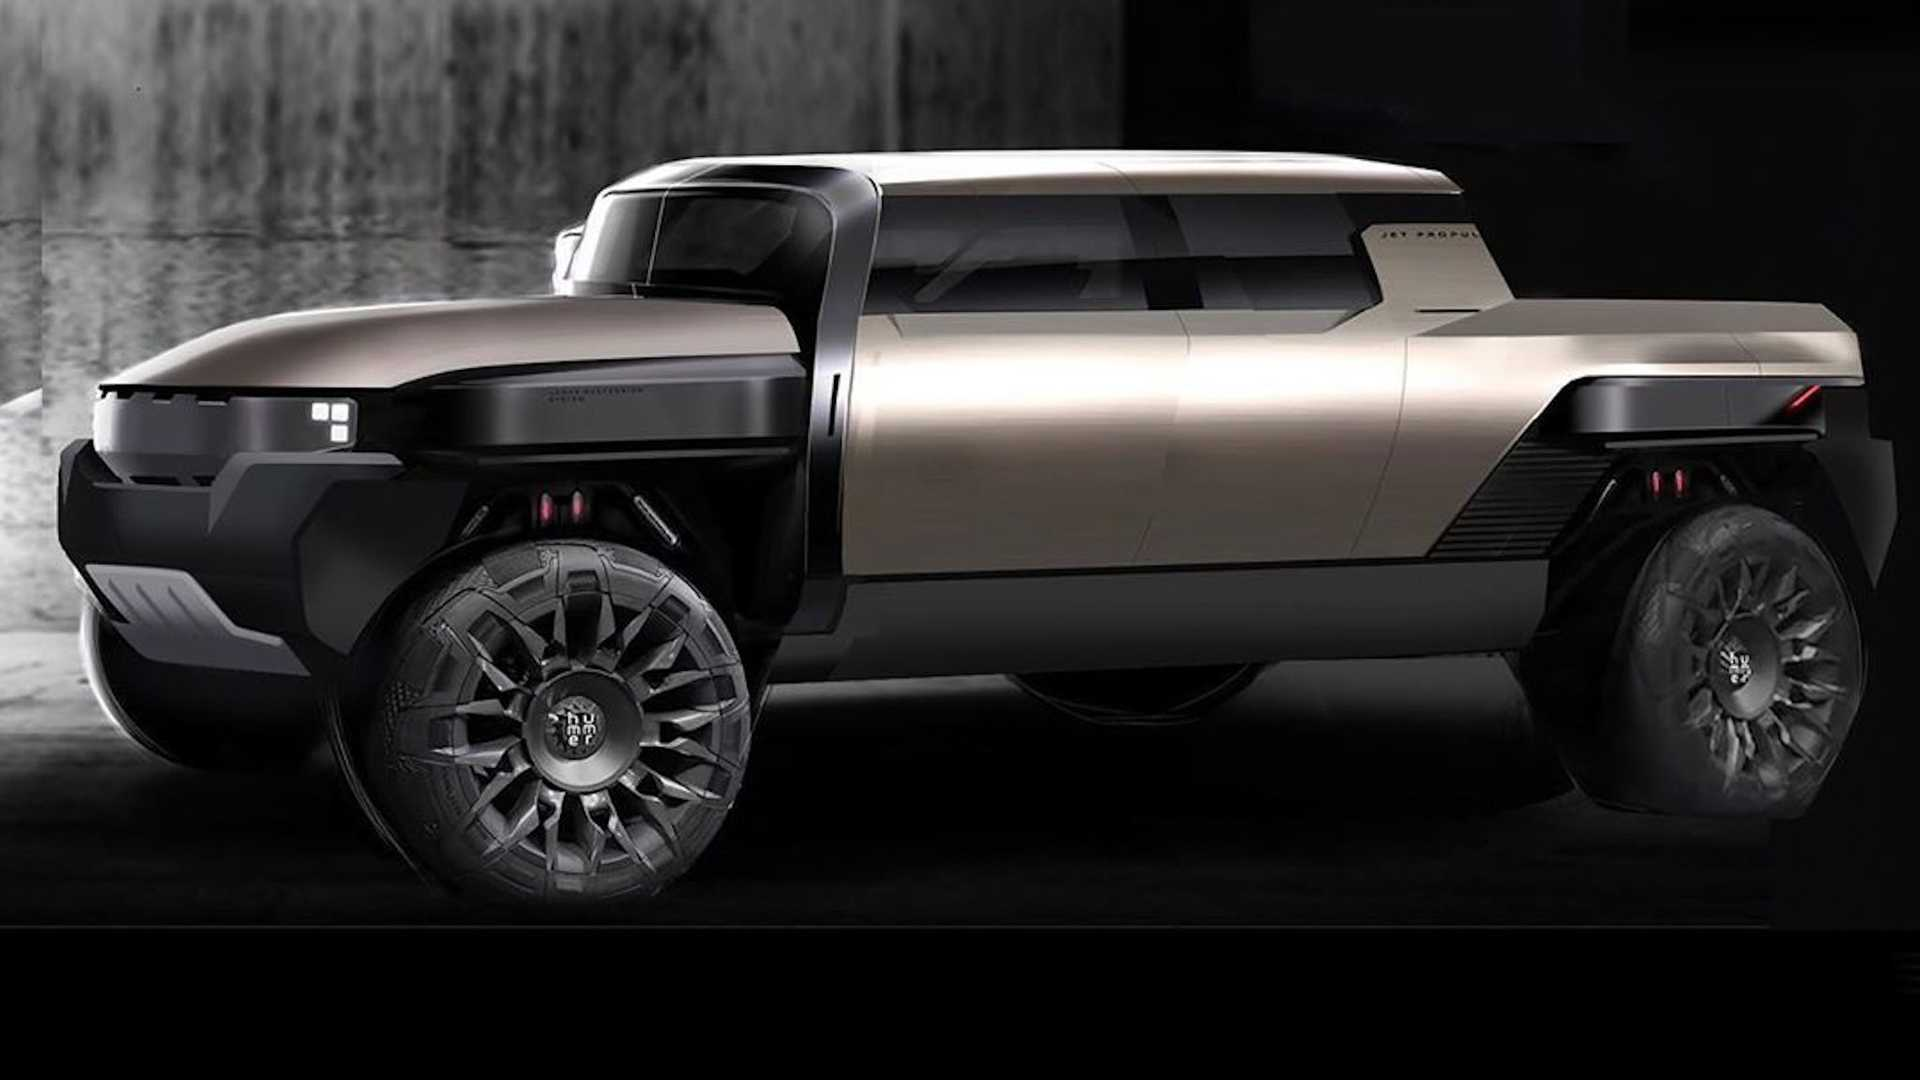 2022-gmc-hummer-ev-sketches-3